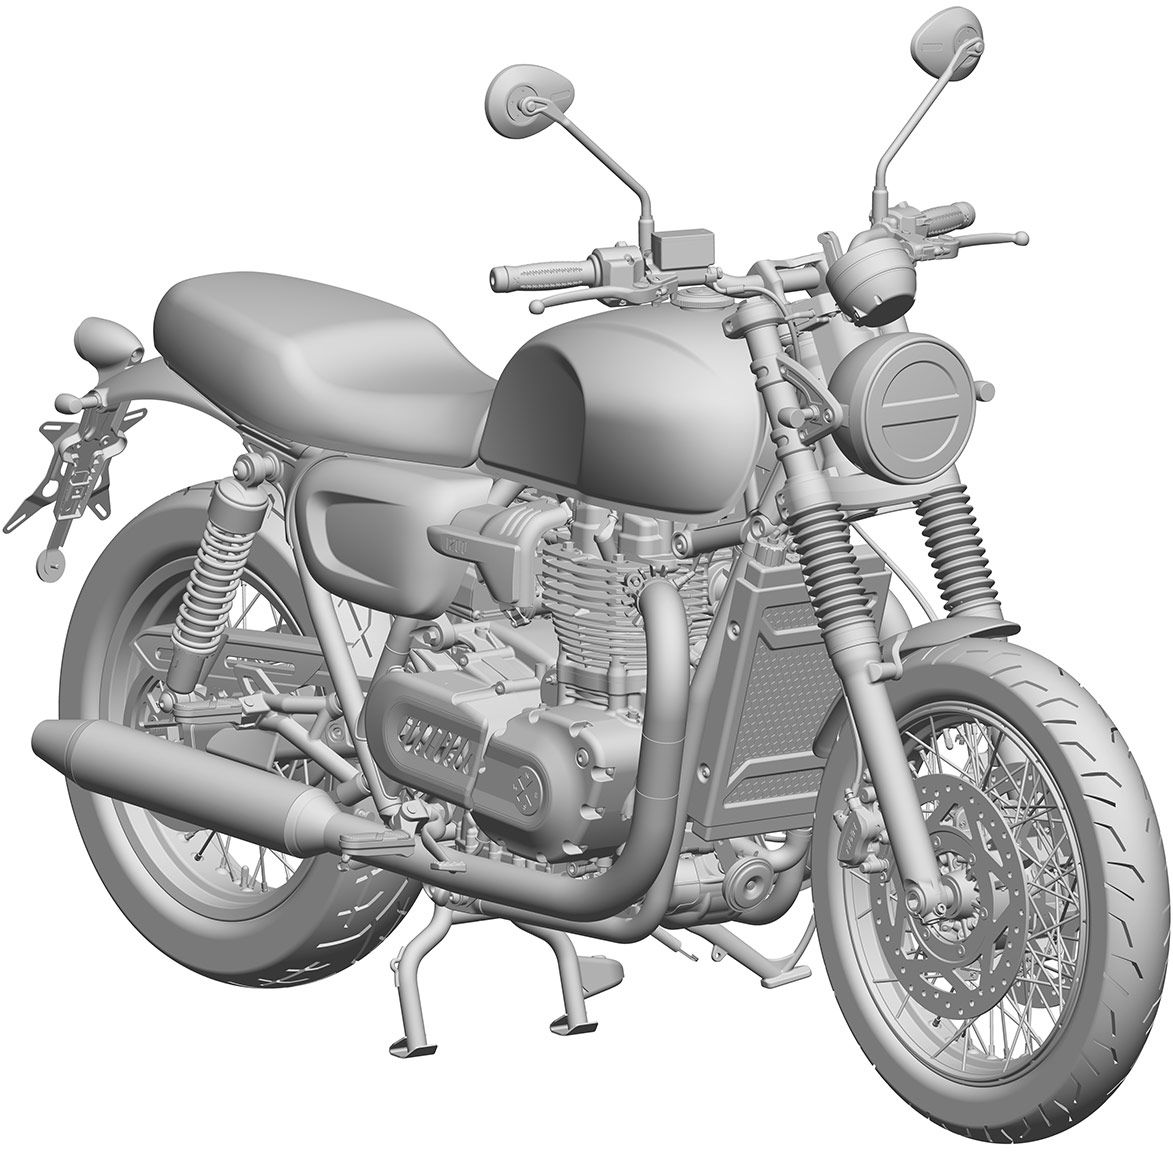 These renderings show Brixton's design will likely have a 1,200cc displacement, with other elements also closely mimicking that of the current Triumph Bonneville.